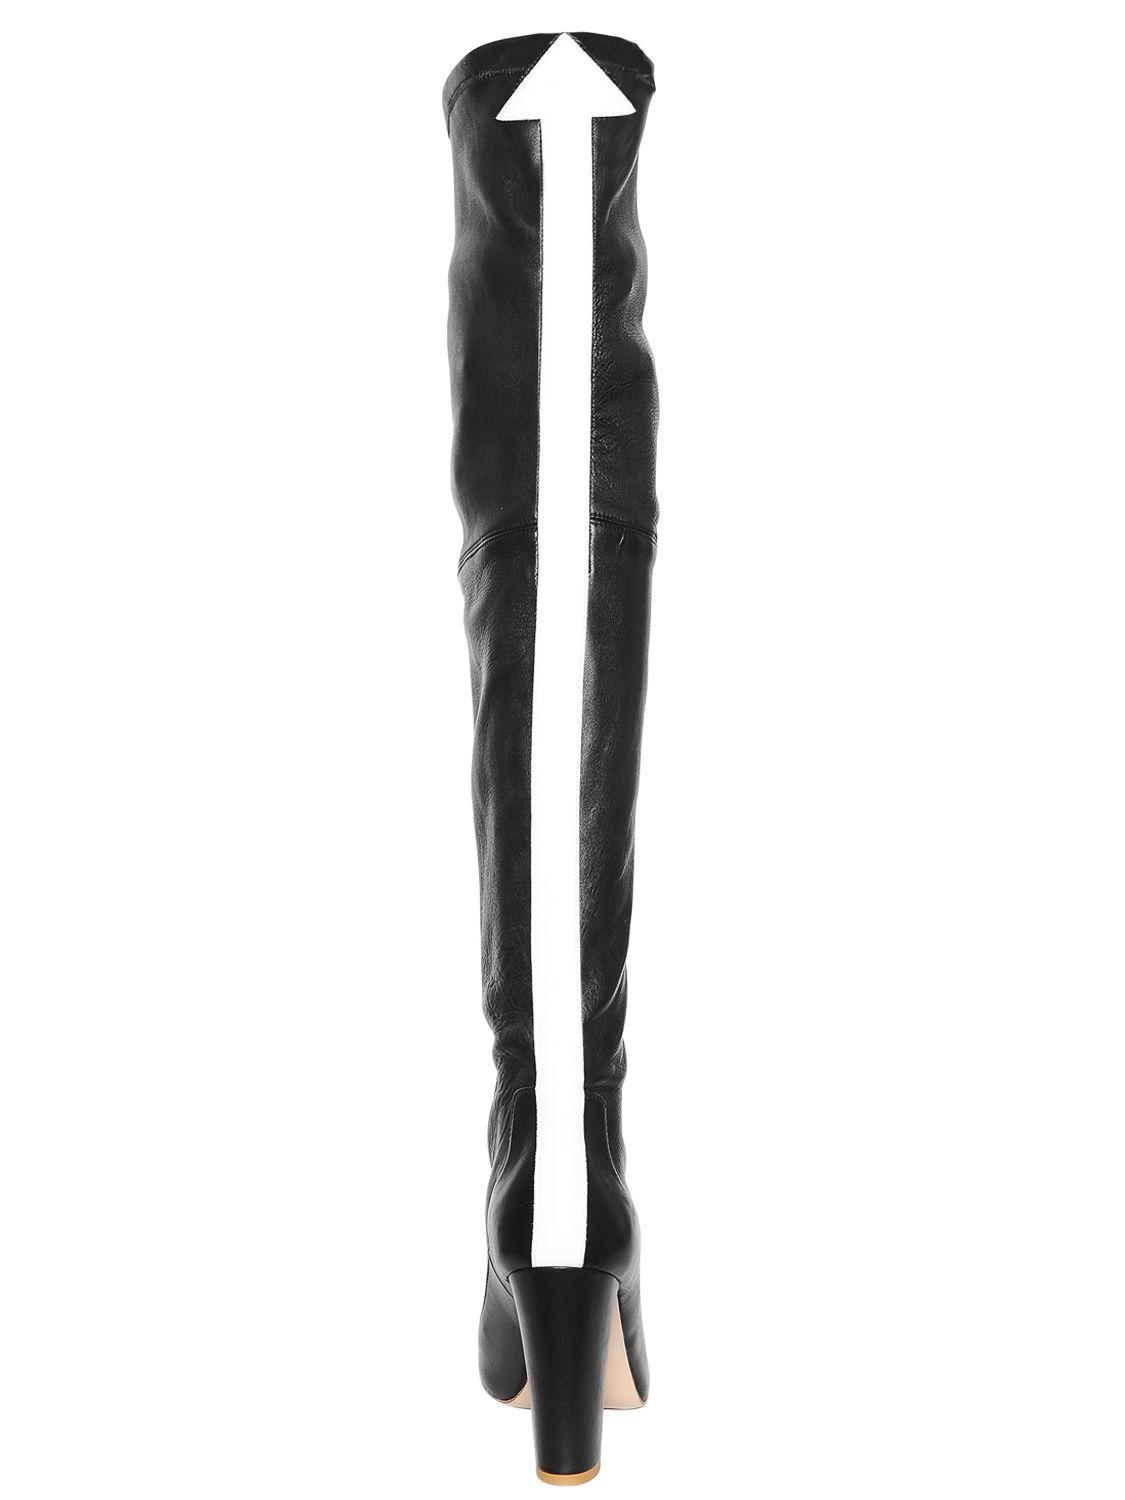 Camilla Elphick 105mm This Is The Limit Leather Boots in Black/White (Black)